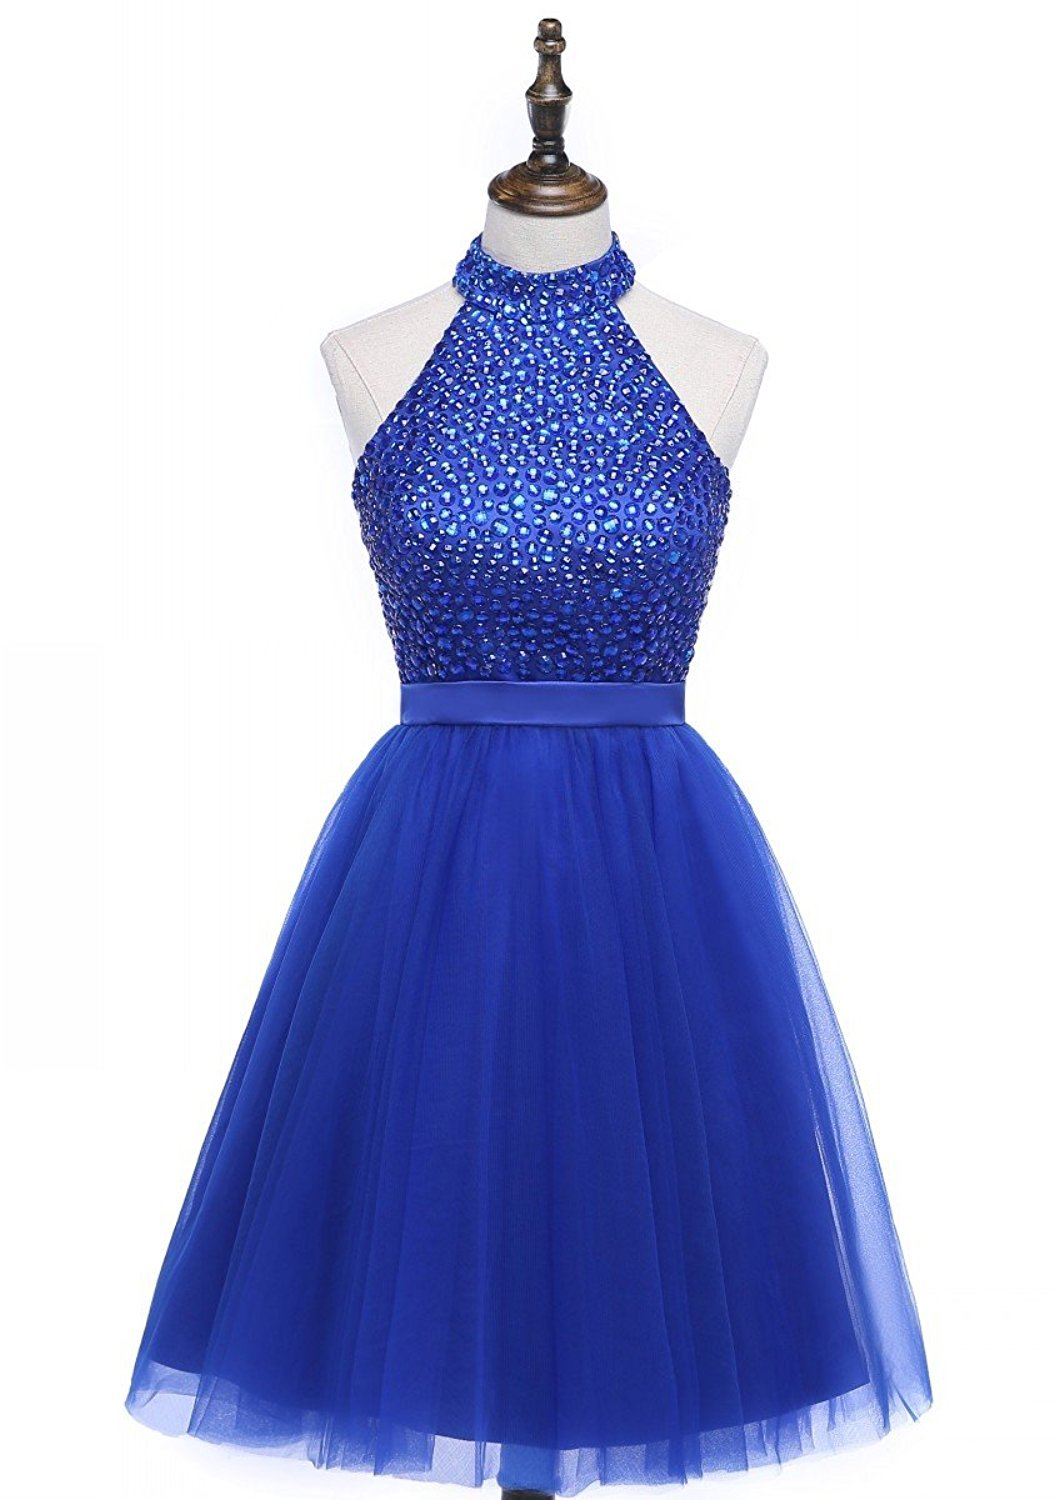 Primary image for 2018 Beading Keyhole Back Homecoming Dresses Halter Beaded Prom Gowns Short